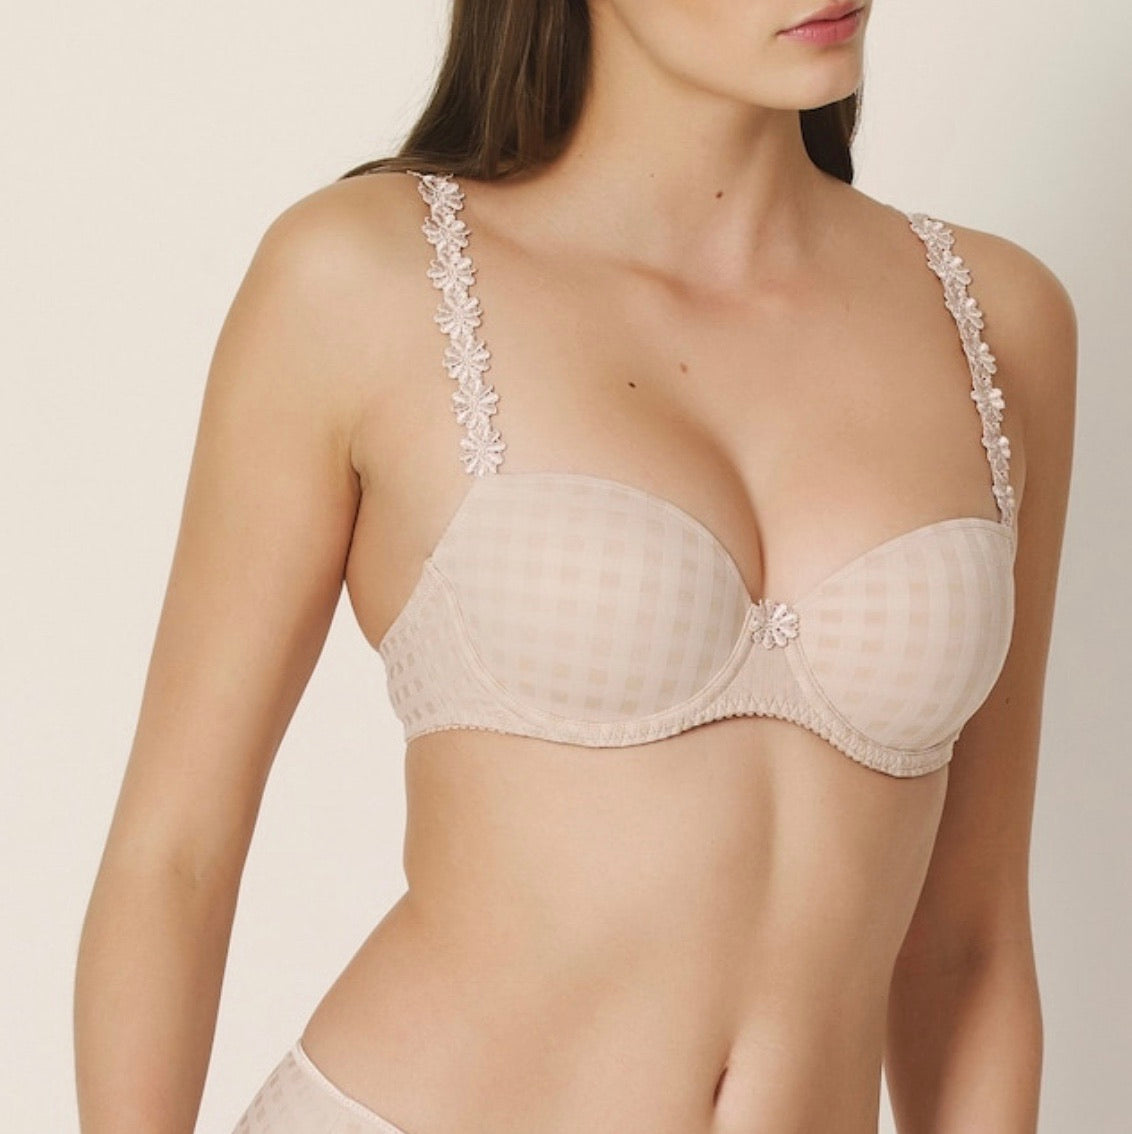 Avero balcony bra